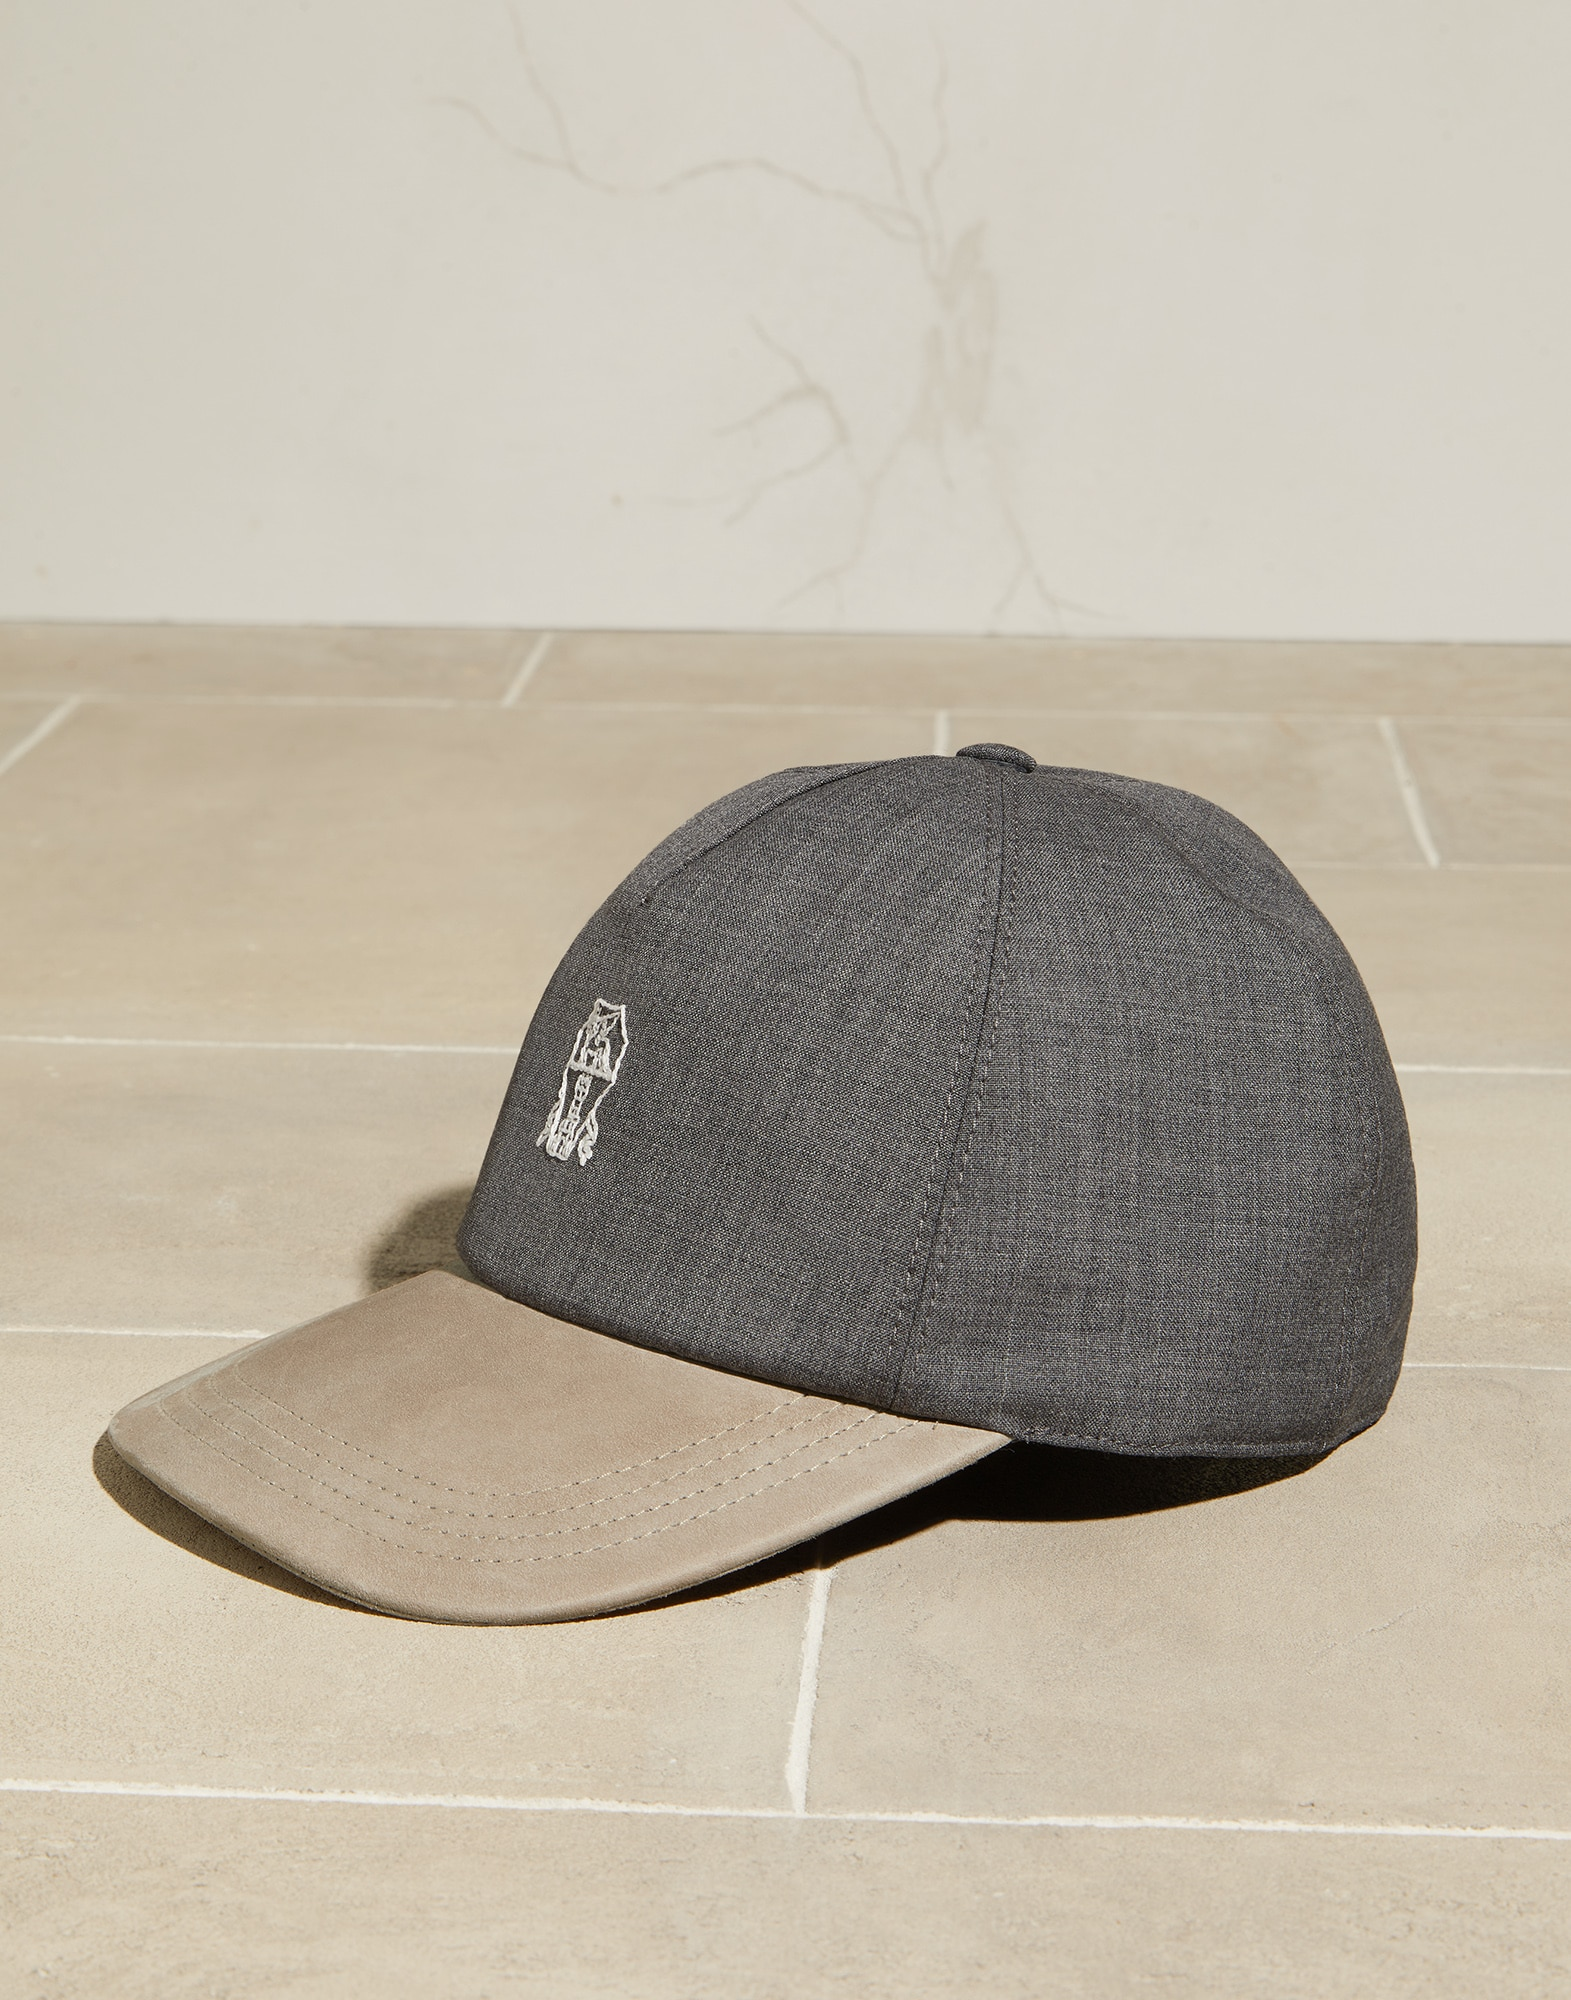 Hat - Front view